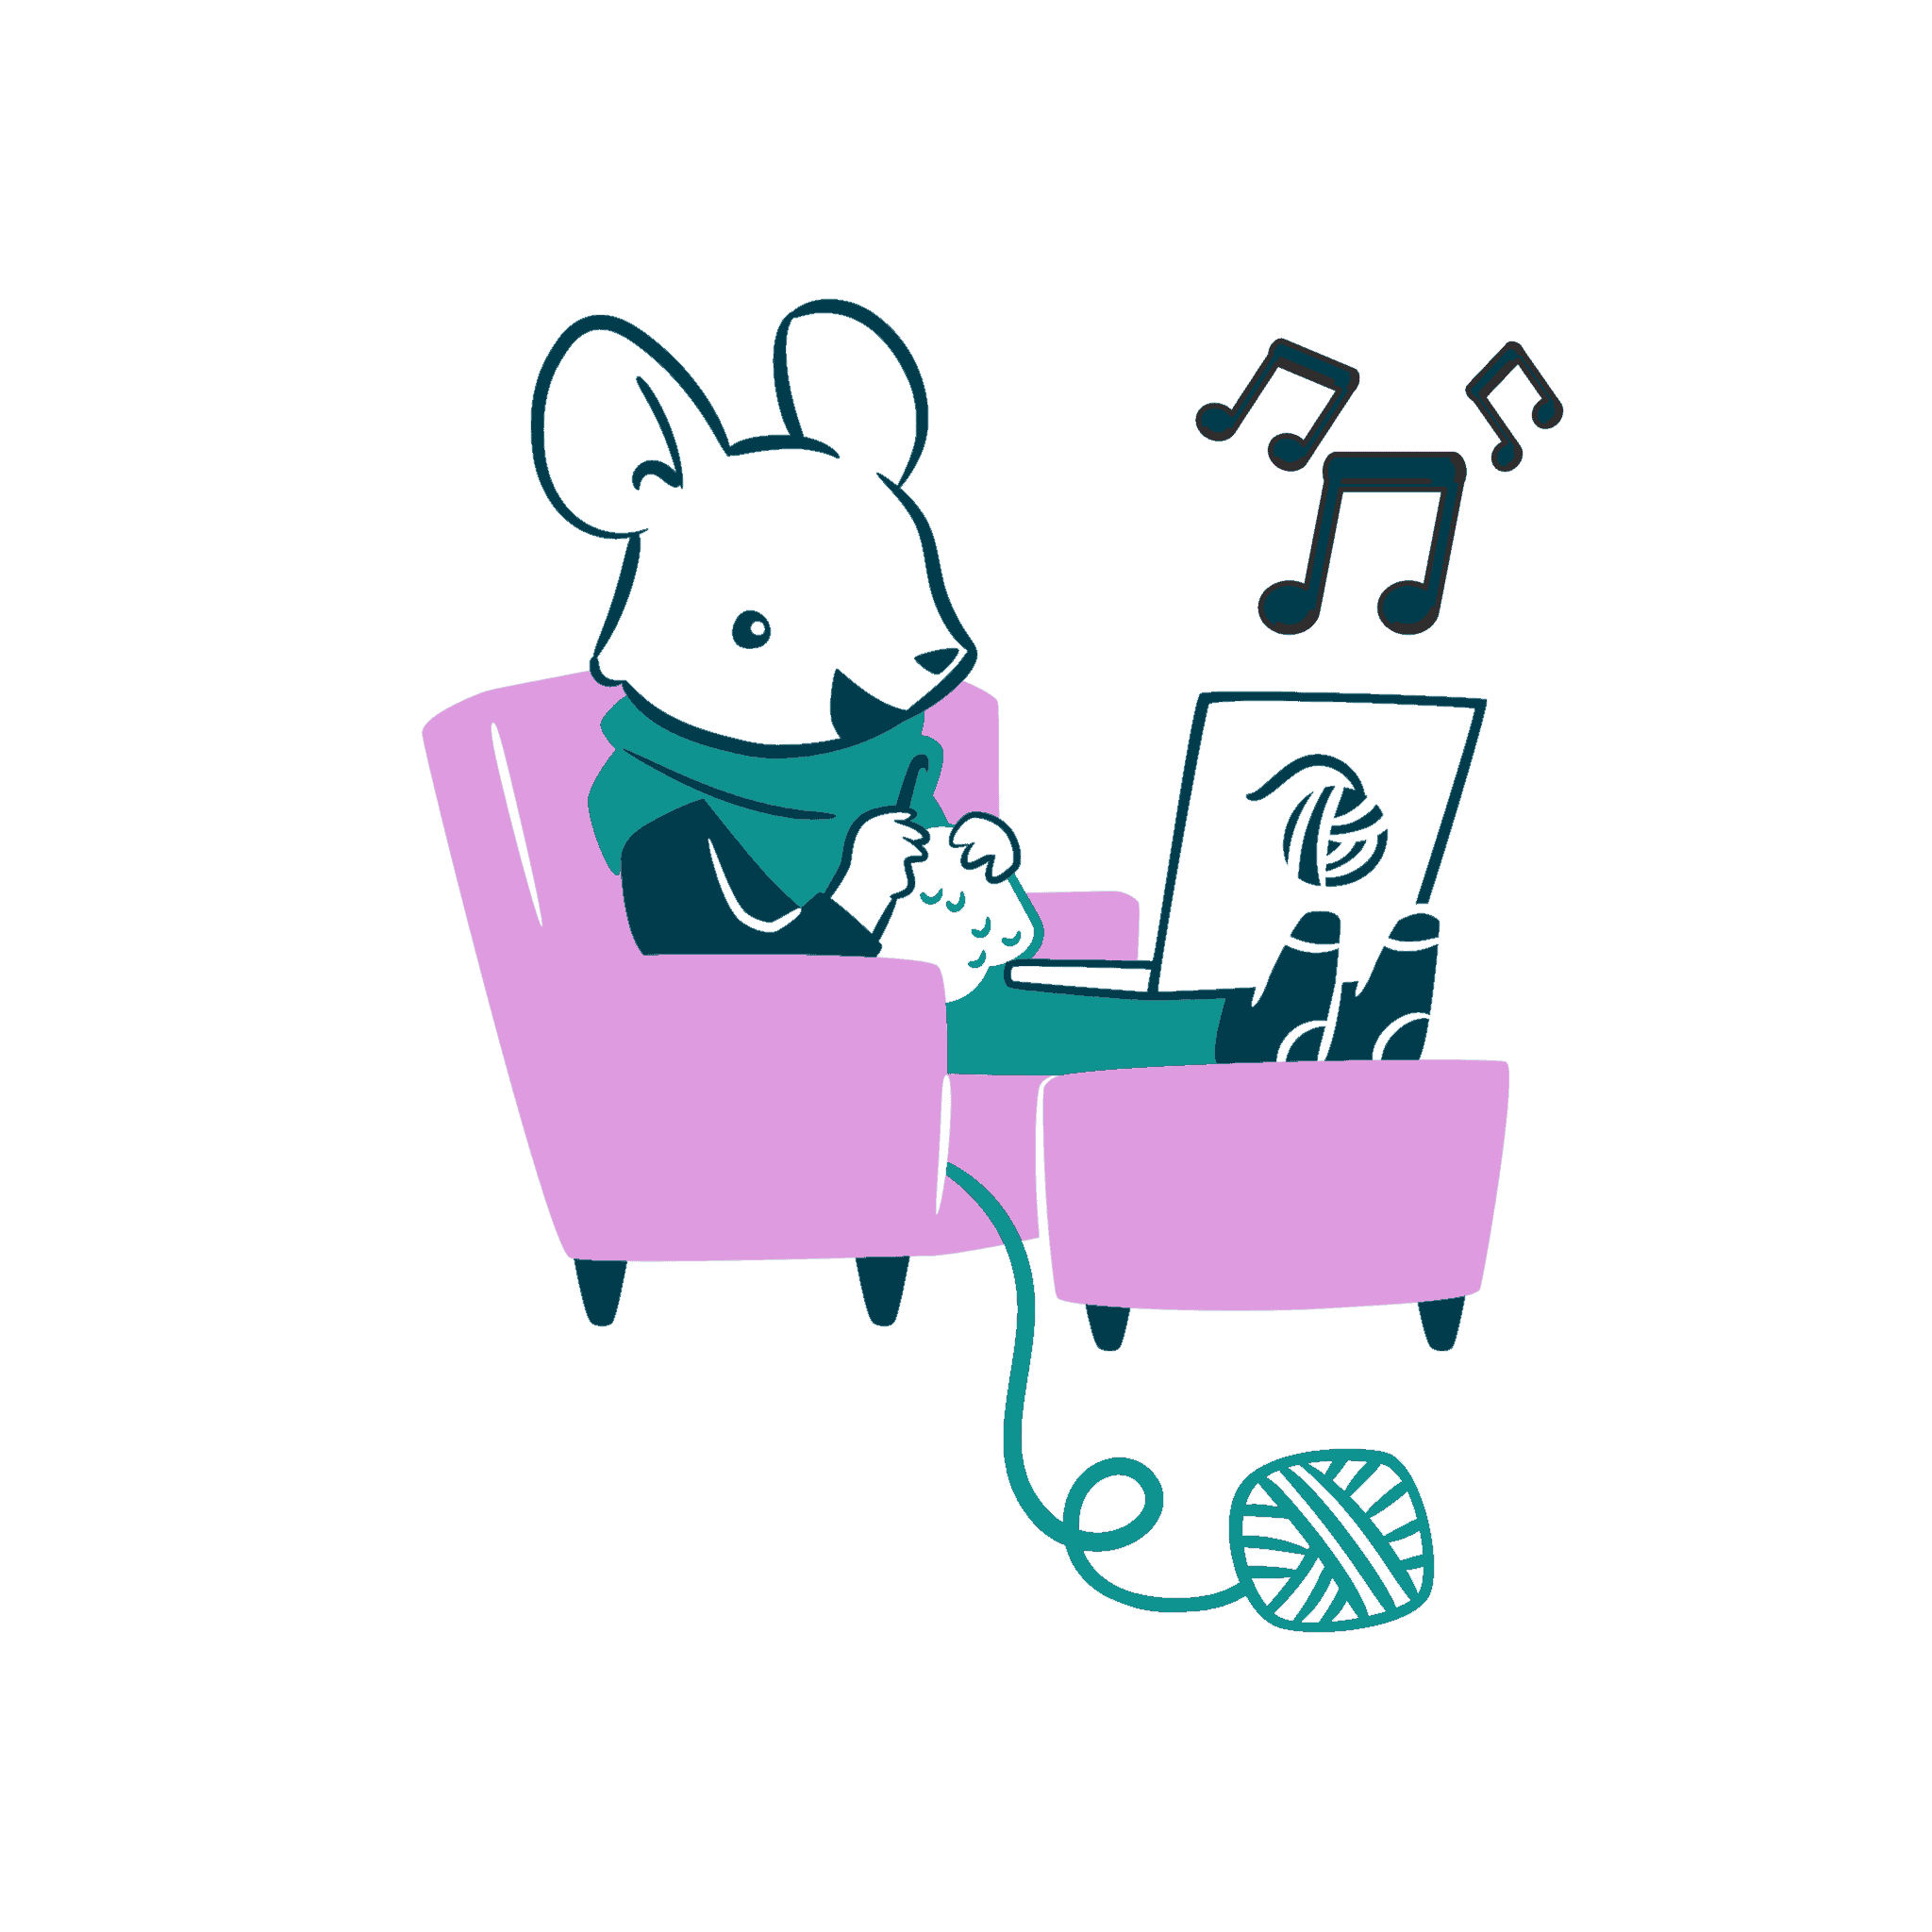 A mouse sitting in a chair crocheting while using a laptop.